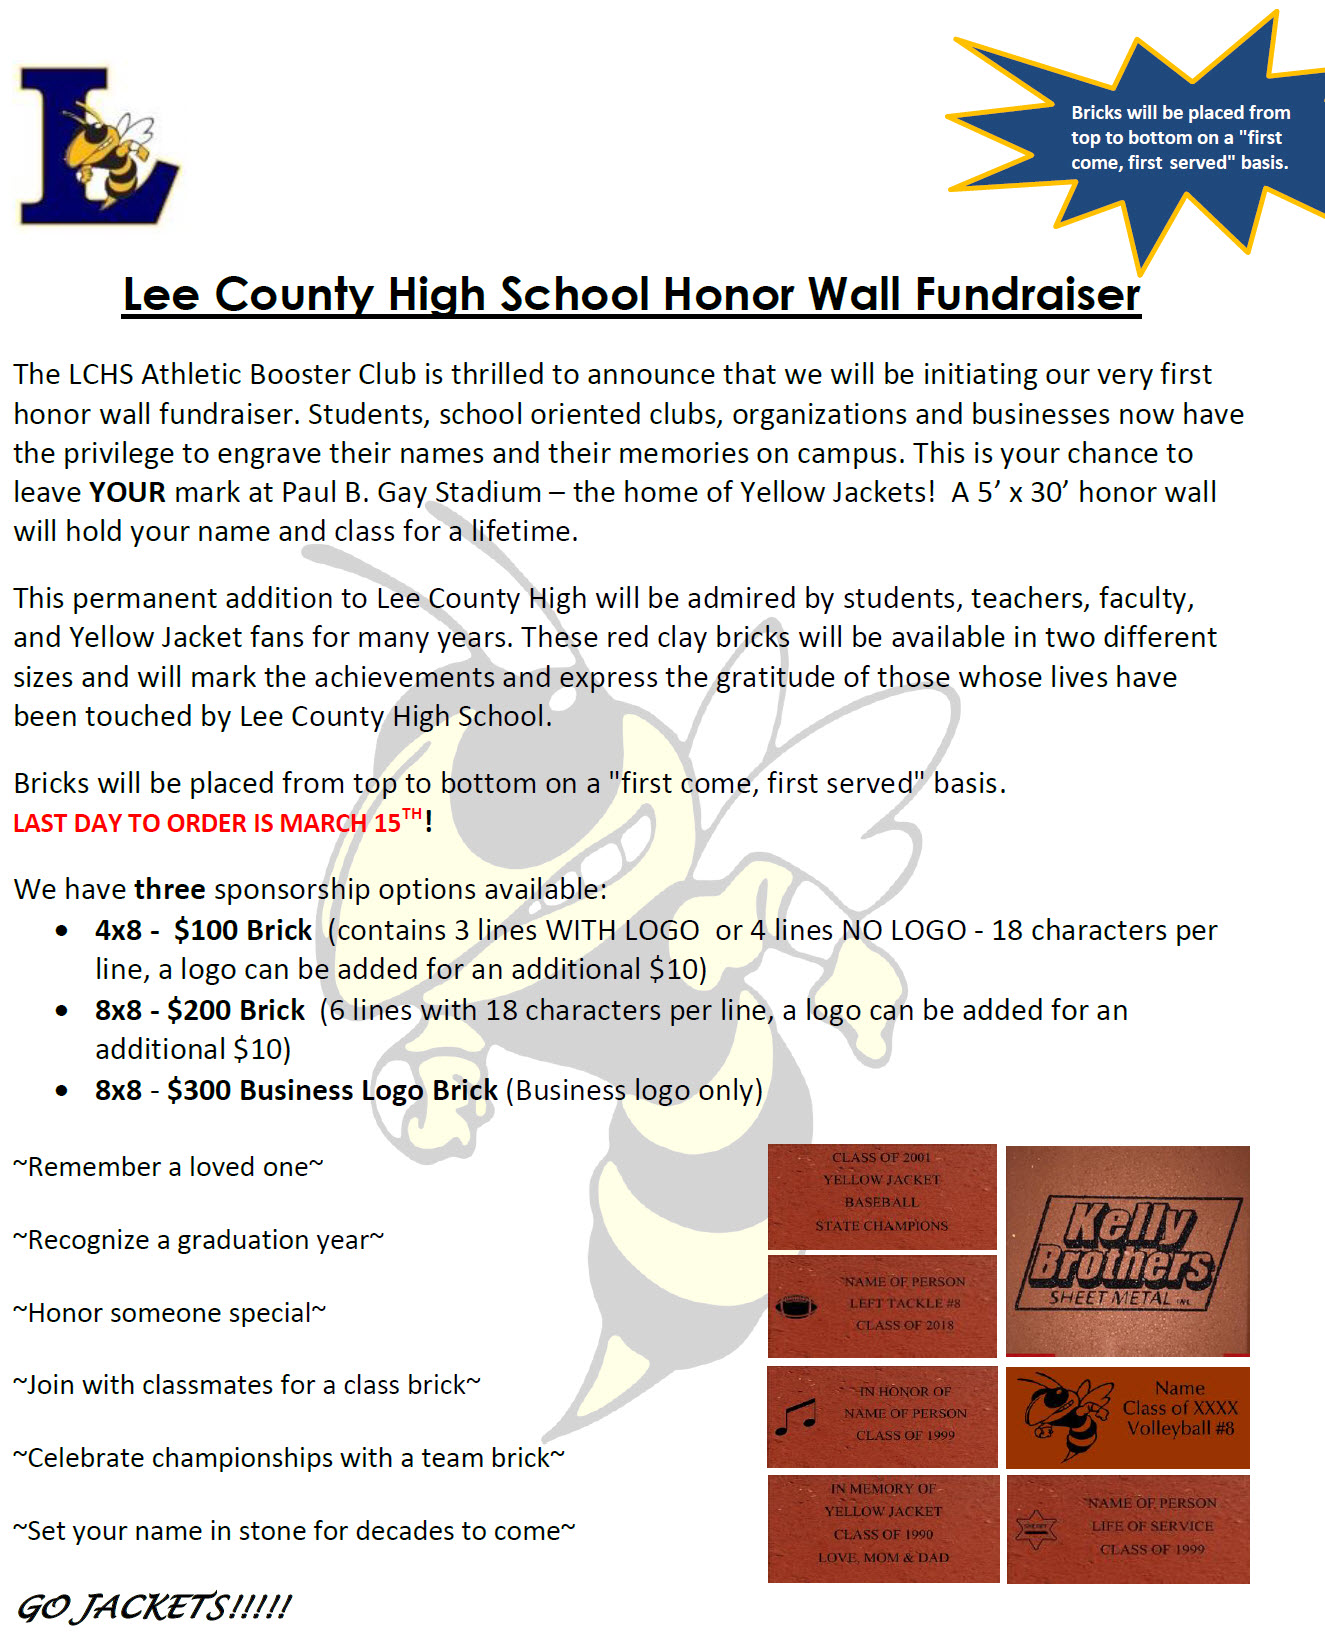 Lee County High School Athletic Booster Club Lee County High School Honor Wall